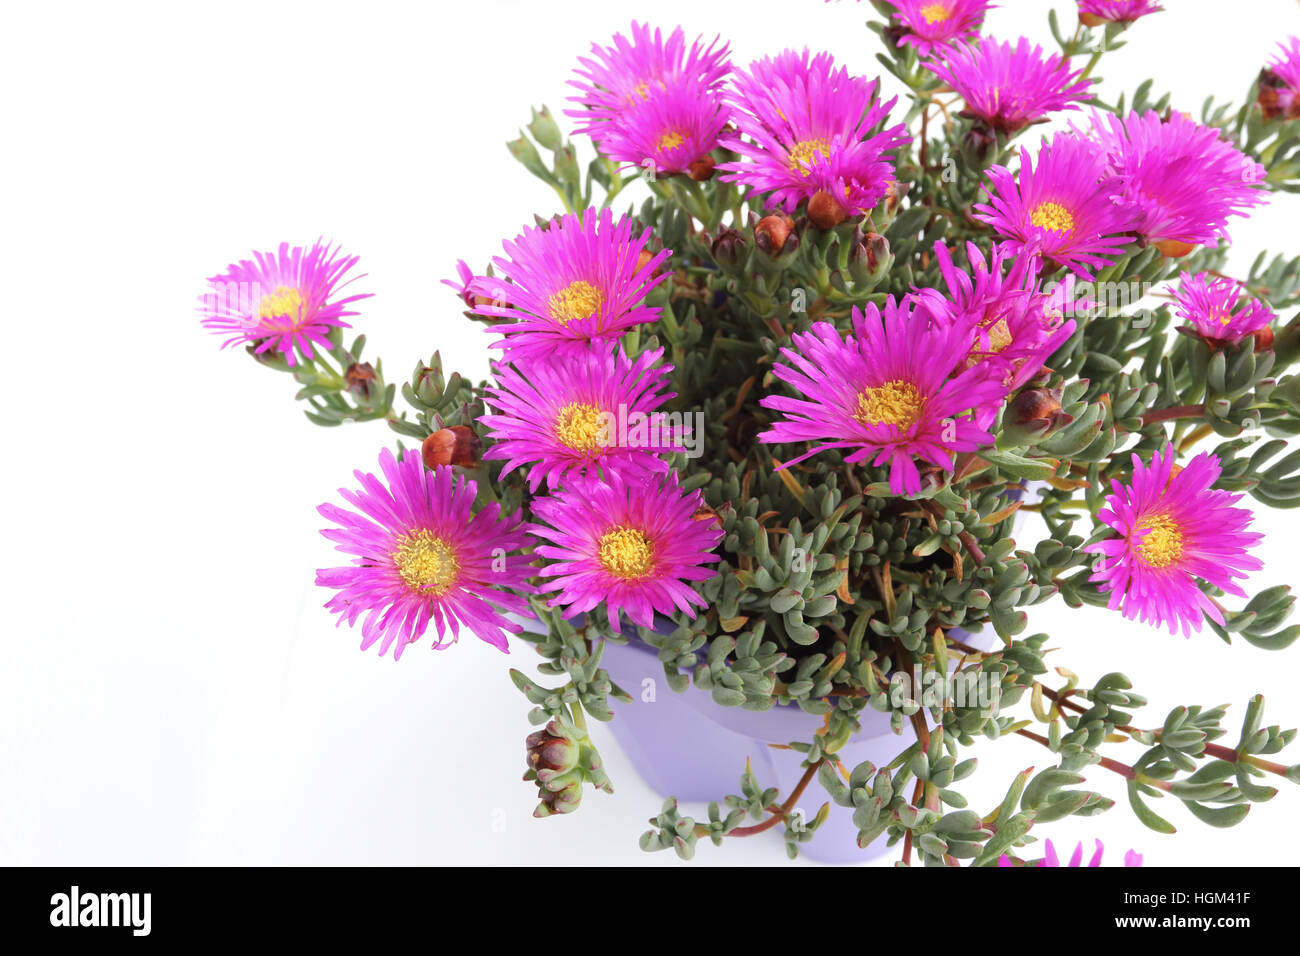 Close up of Mesembryanthemum Blueberry Rumble or known as Lampranthus Blueberry against white background Stock Photo